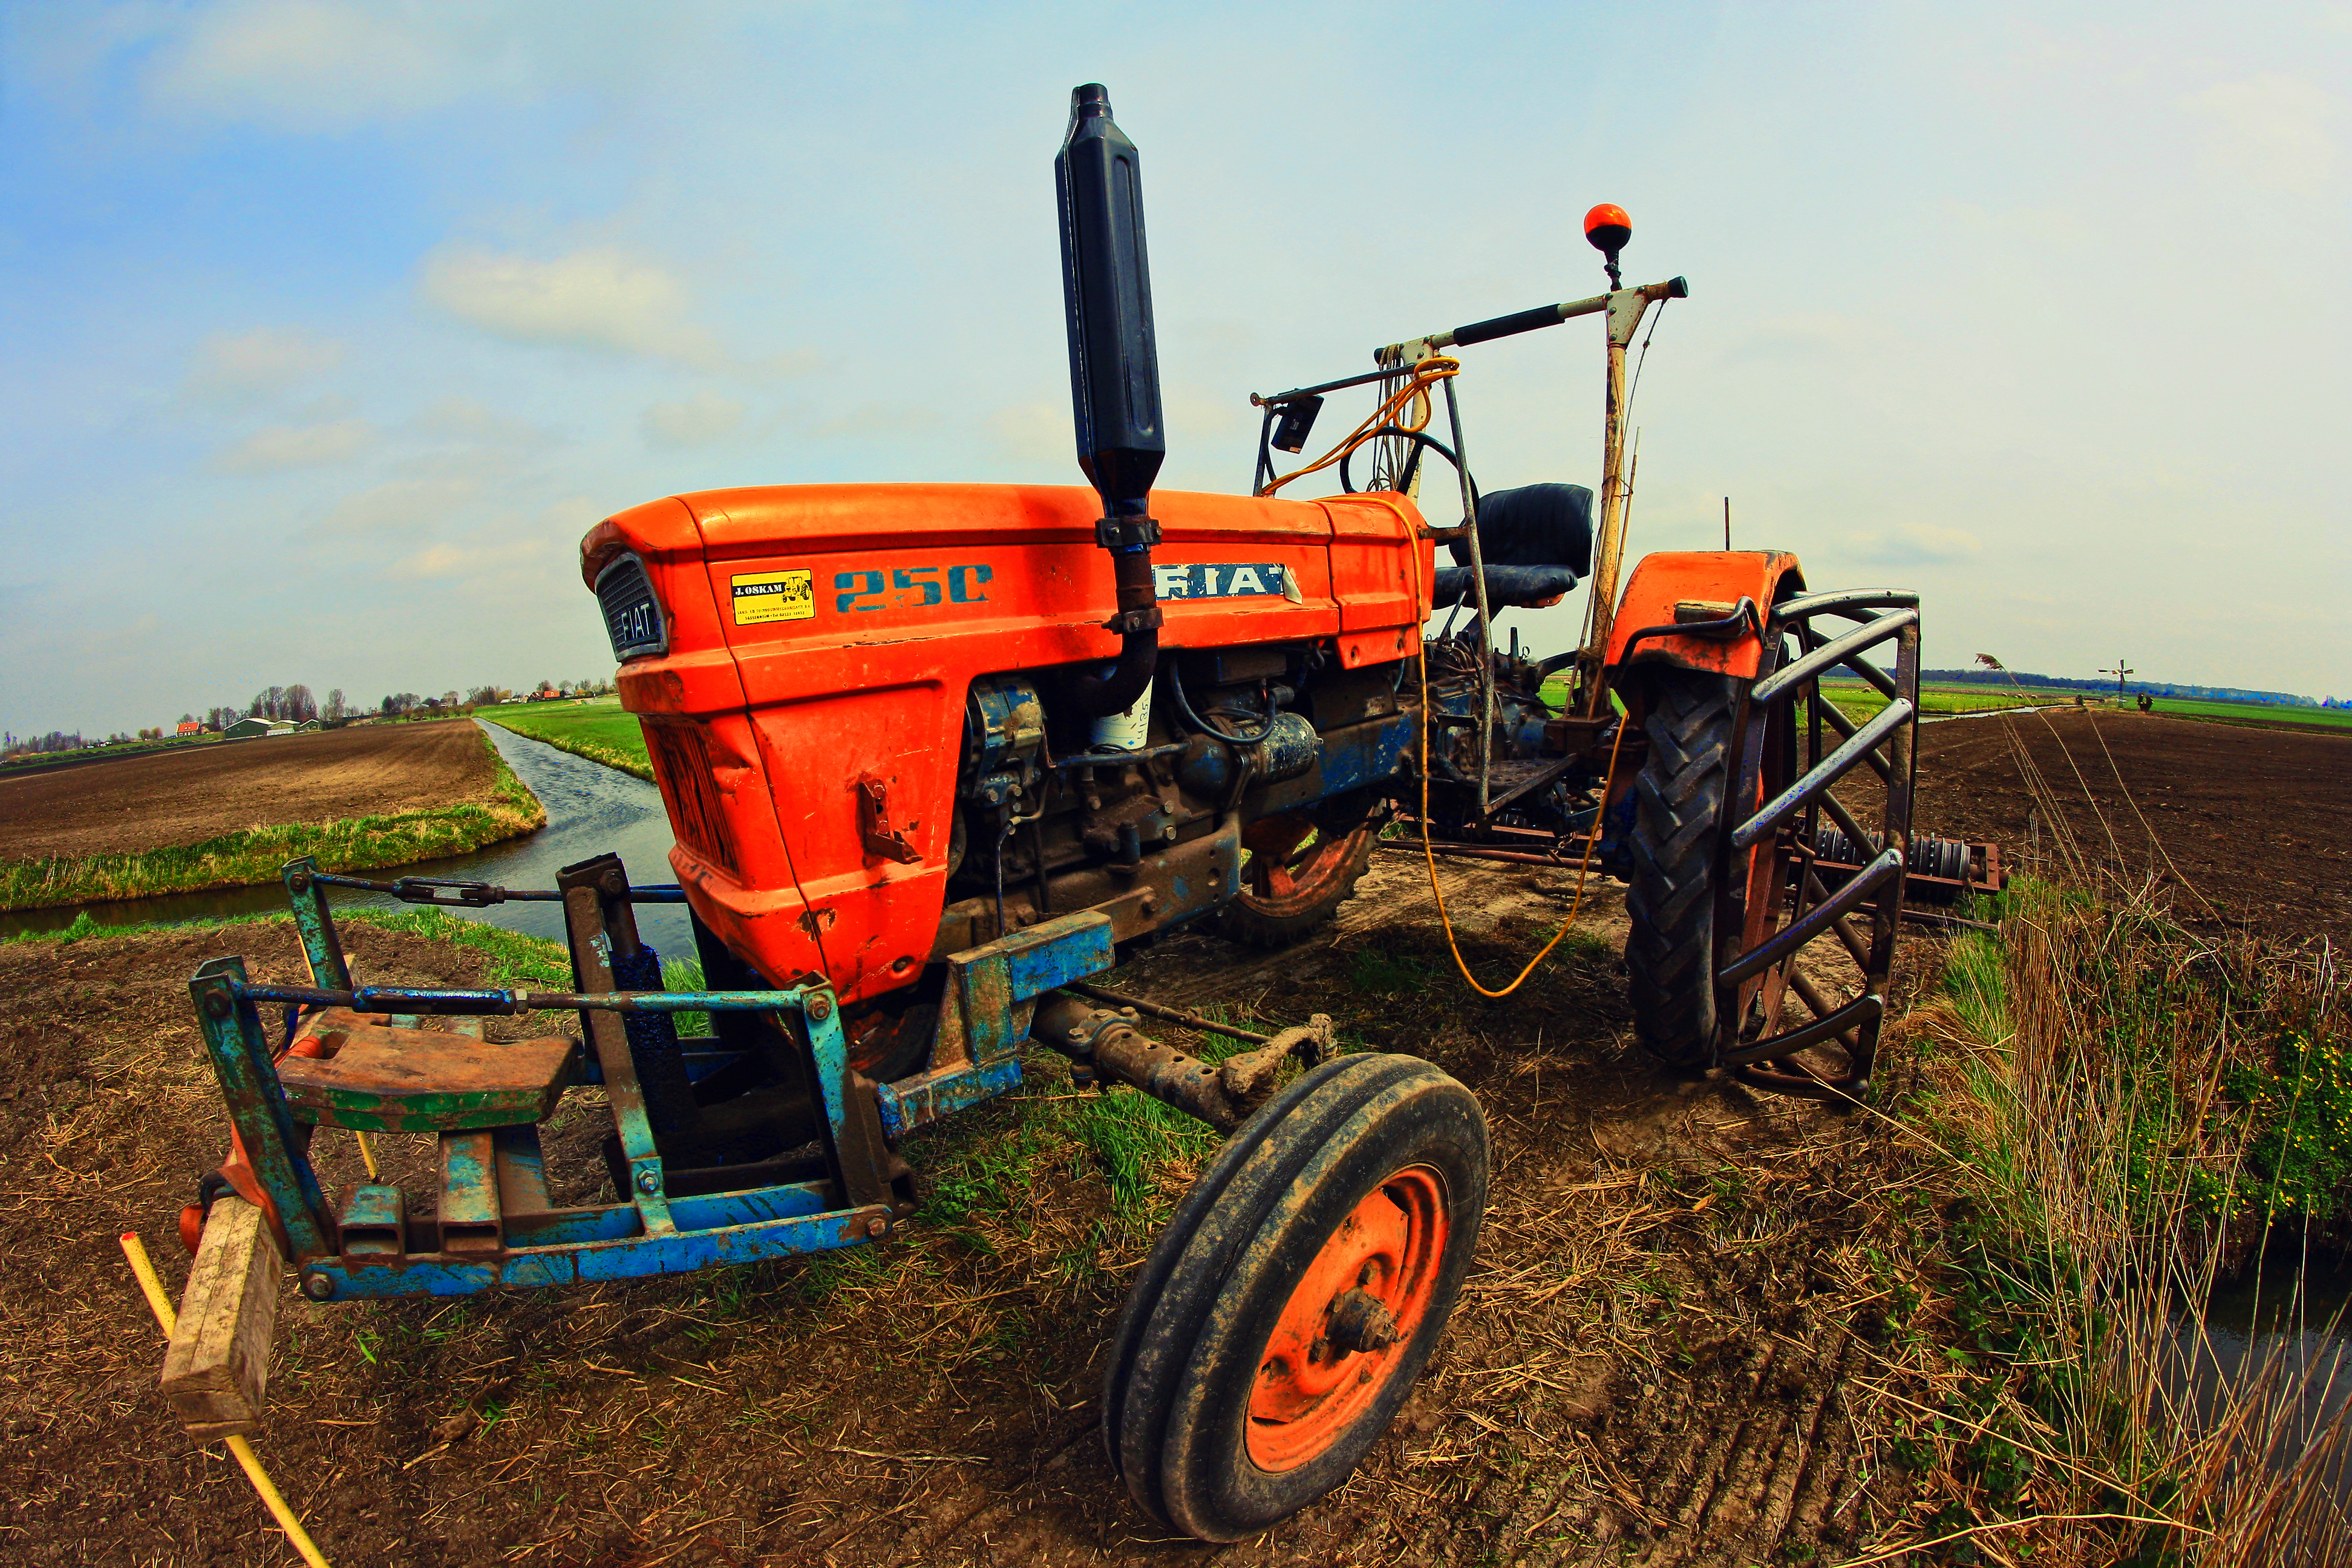 tractor with htm new front local tractors tyres clean serviced for by fenders ourselves related holland sale very fiat page fitted